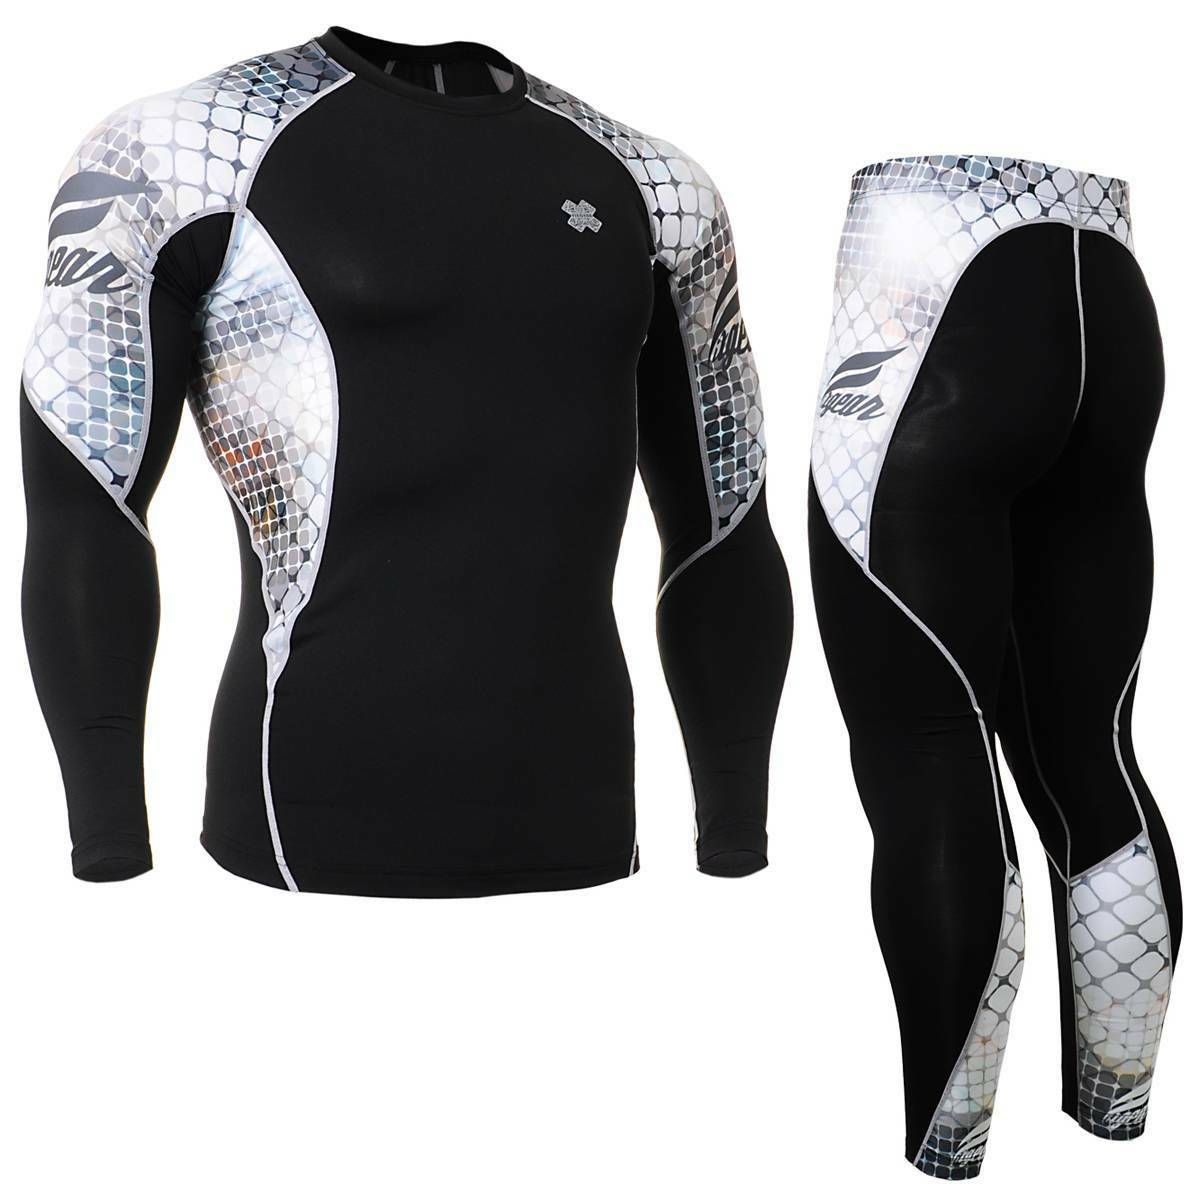 FIXGEAR C2L P2L-B38 Compression Shirts & Shorts Set Sportswear MMA Training Gym